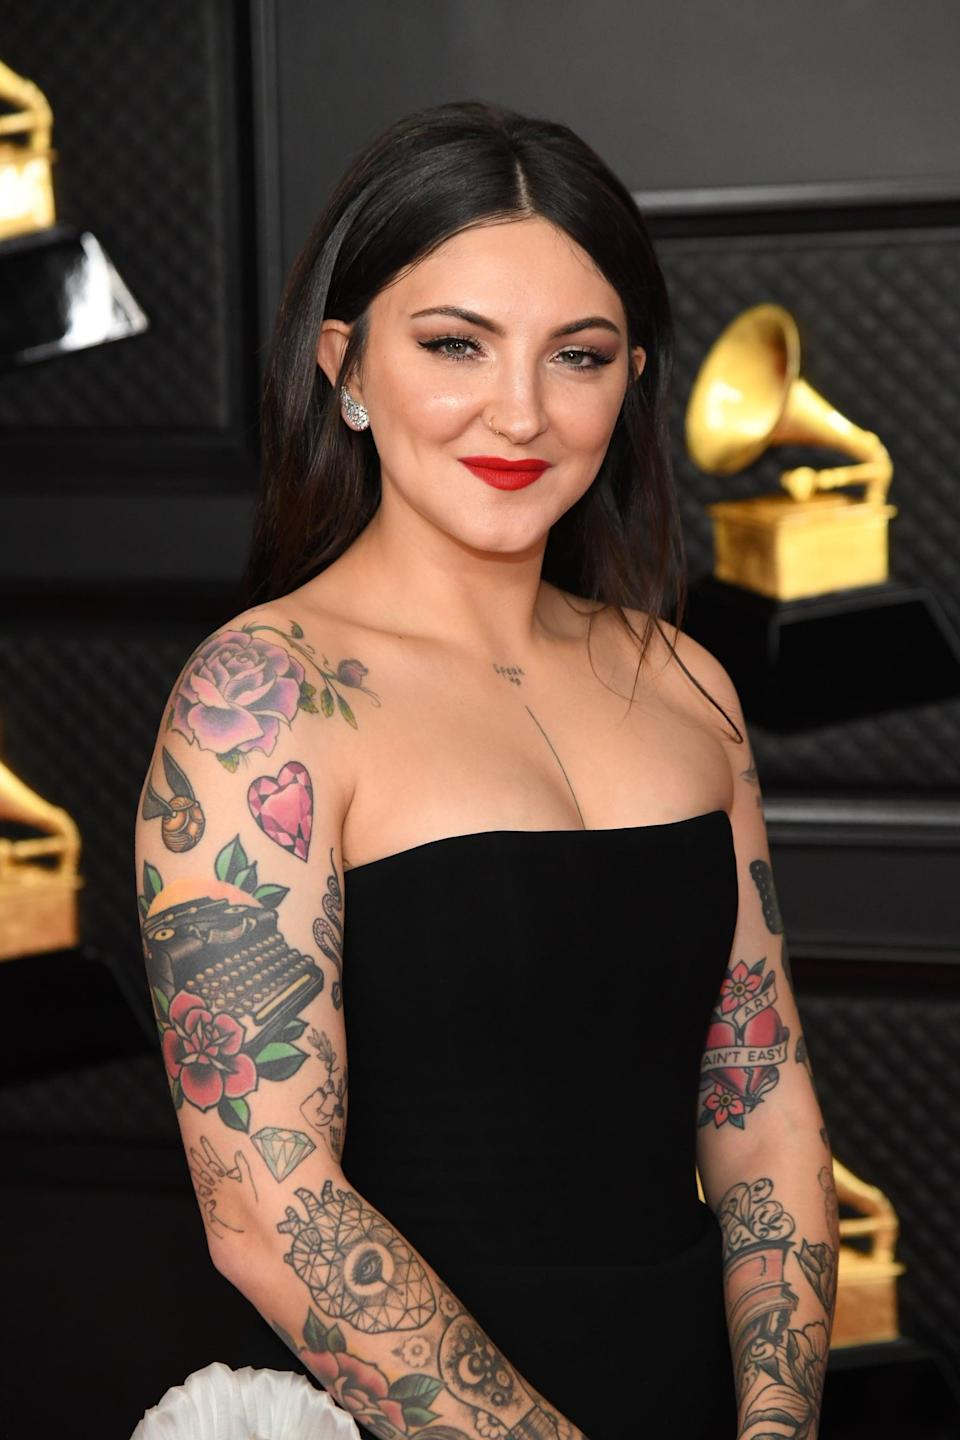 """<p>Scattered throughout Michaels's arms are four gemstone tattoos, with the most visible one being the heart-shaped pink stone on her right shoulder. They are for her fans, who she calls her """"little gems."""" She got them in July of 2018.</p>"""